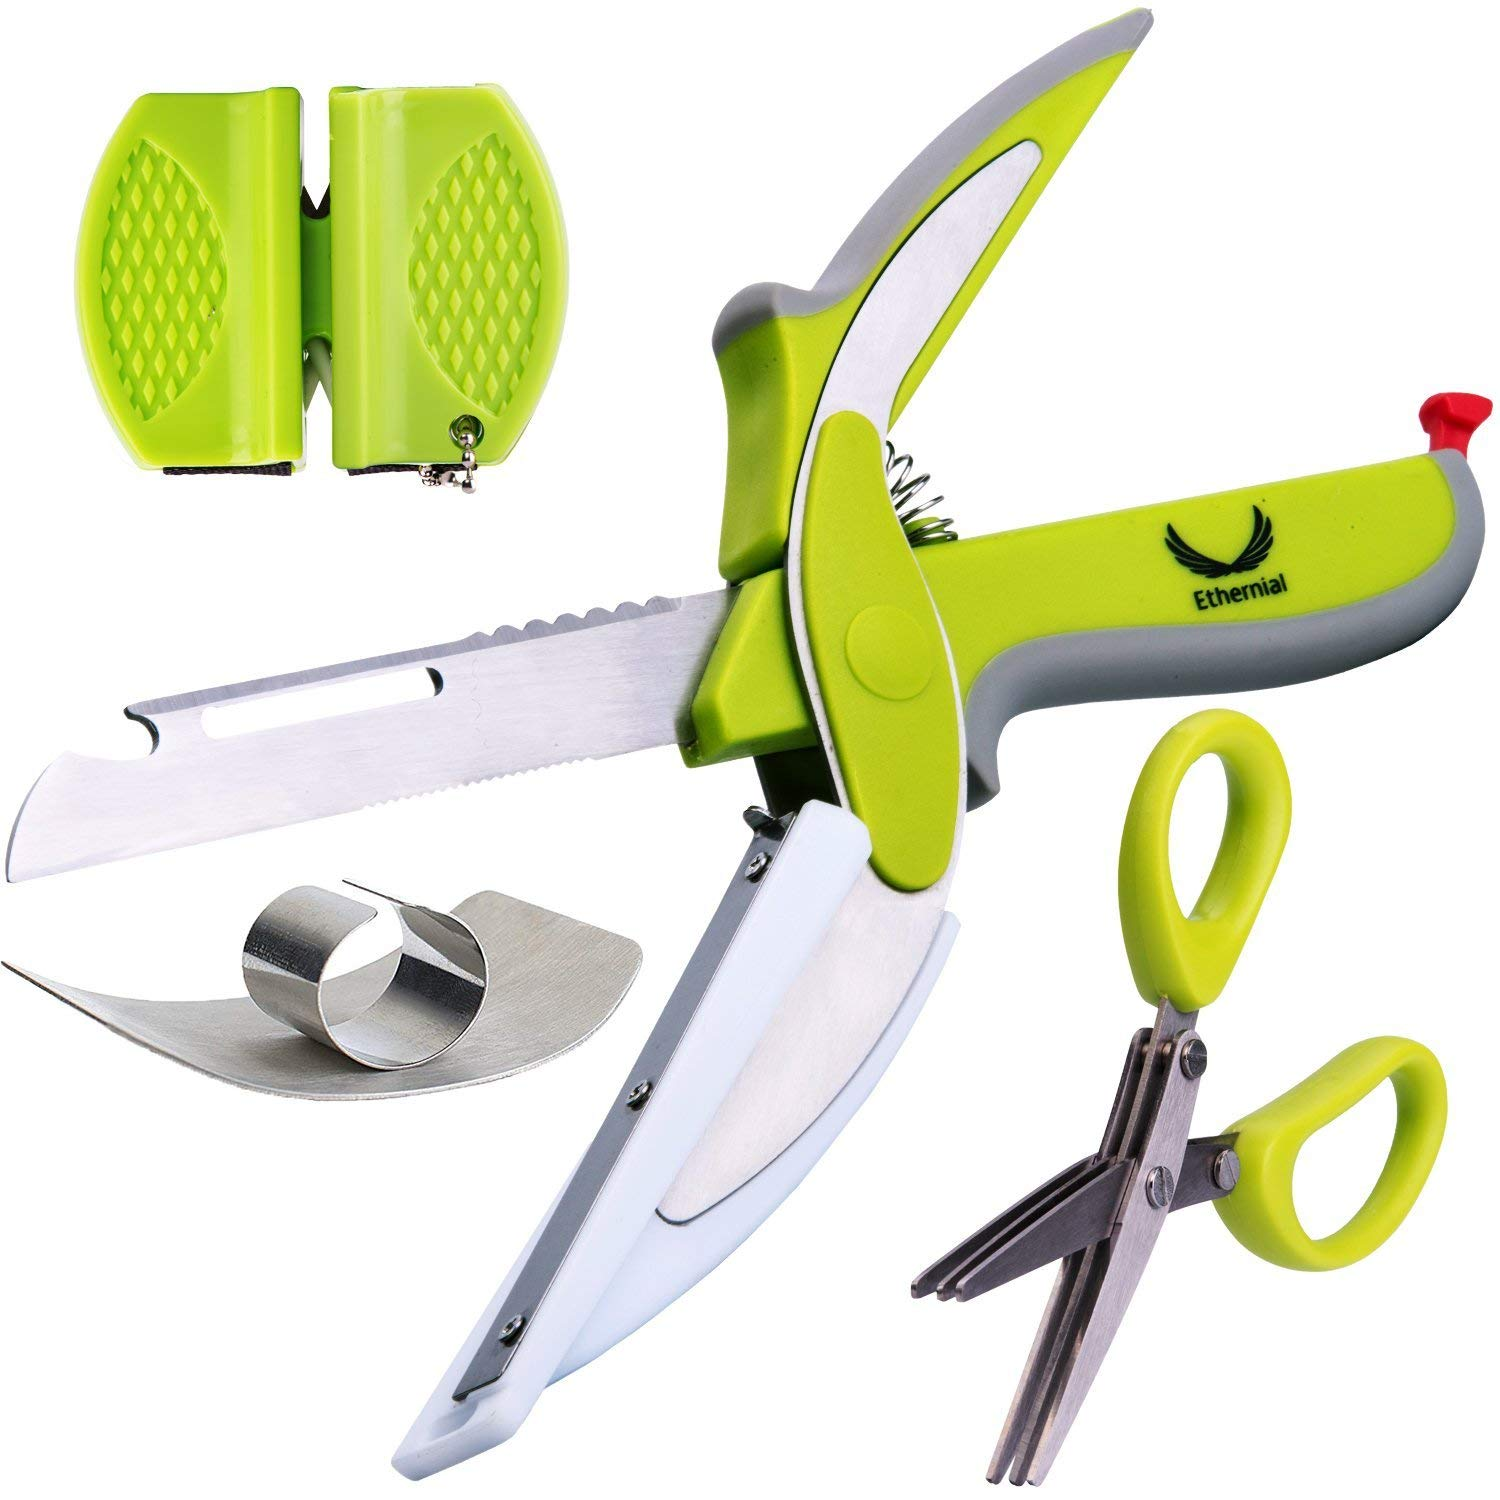 Ethernial 6-in-1 Food Chopper Knife - Salad Scissors Set - Smart Kitchen Shears with Built-in Cutting Board - Use for Quick Cutting - Including Herb Scissors, Finger Guard, Sharpener